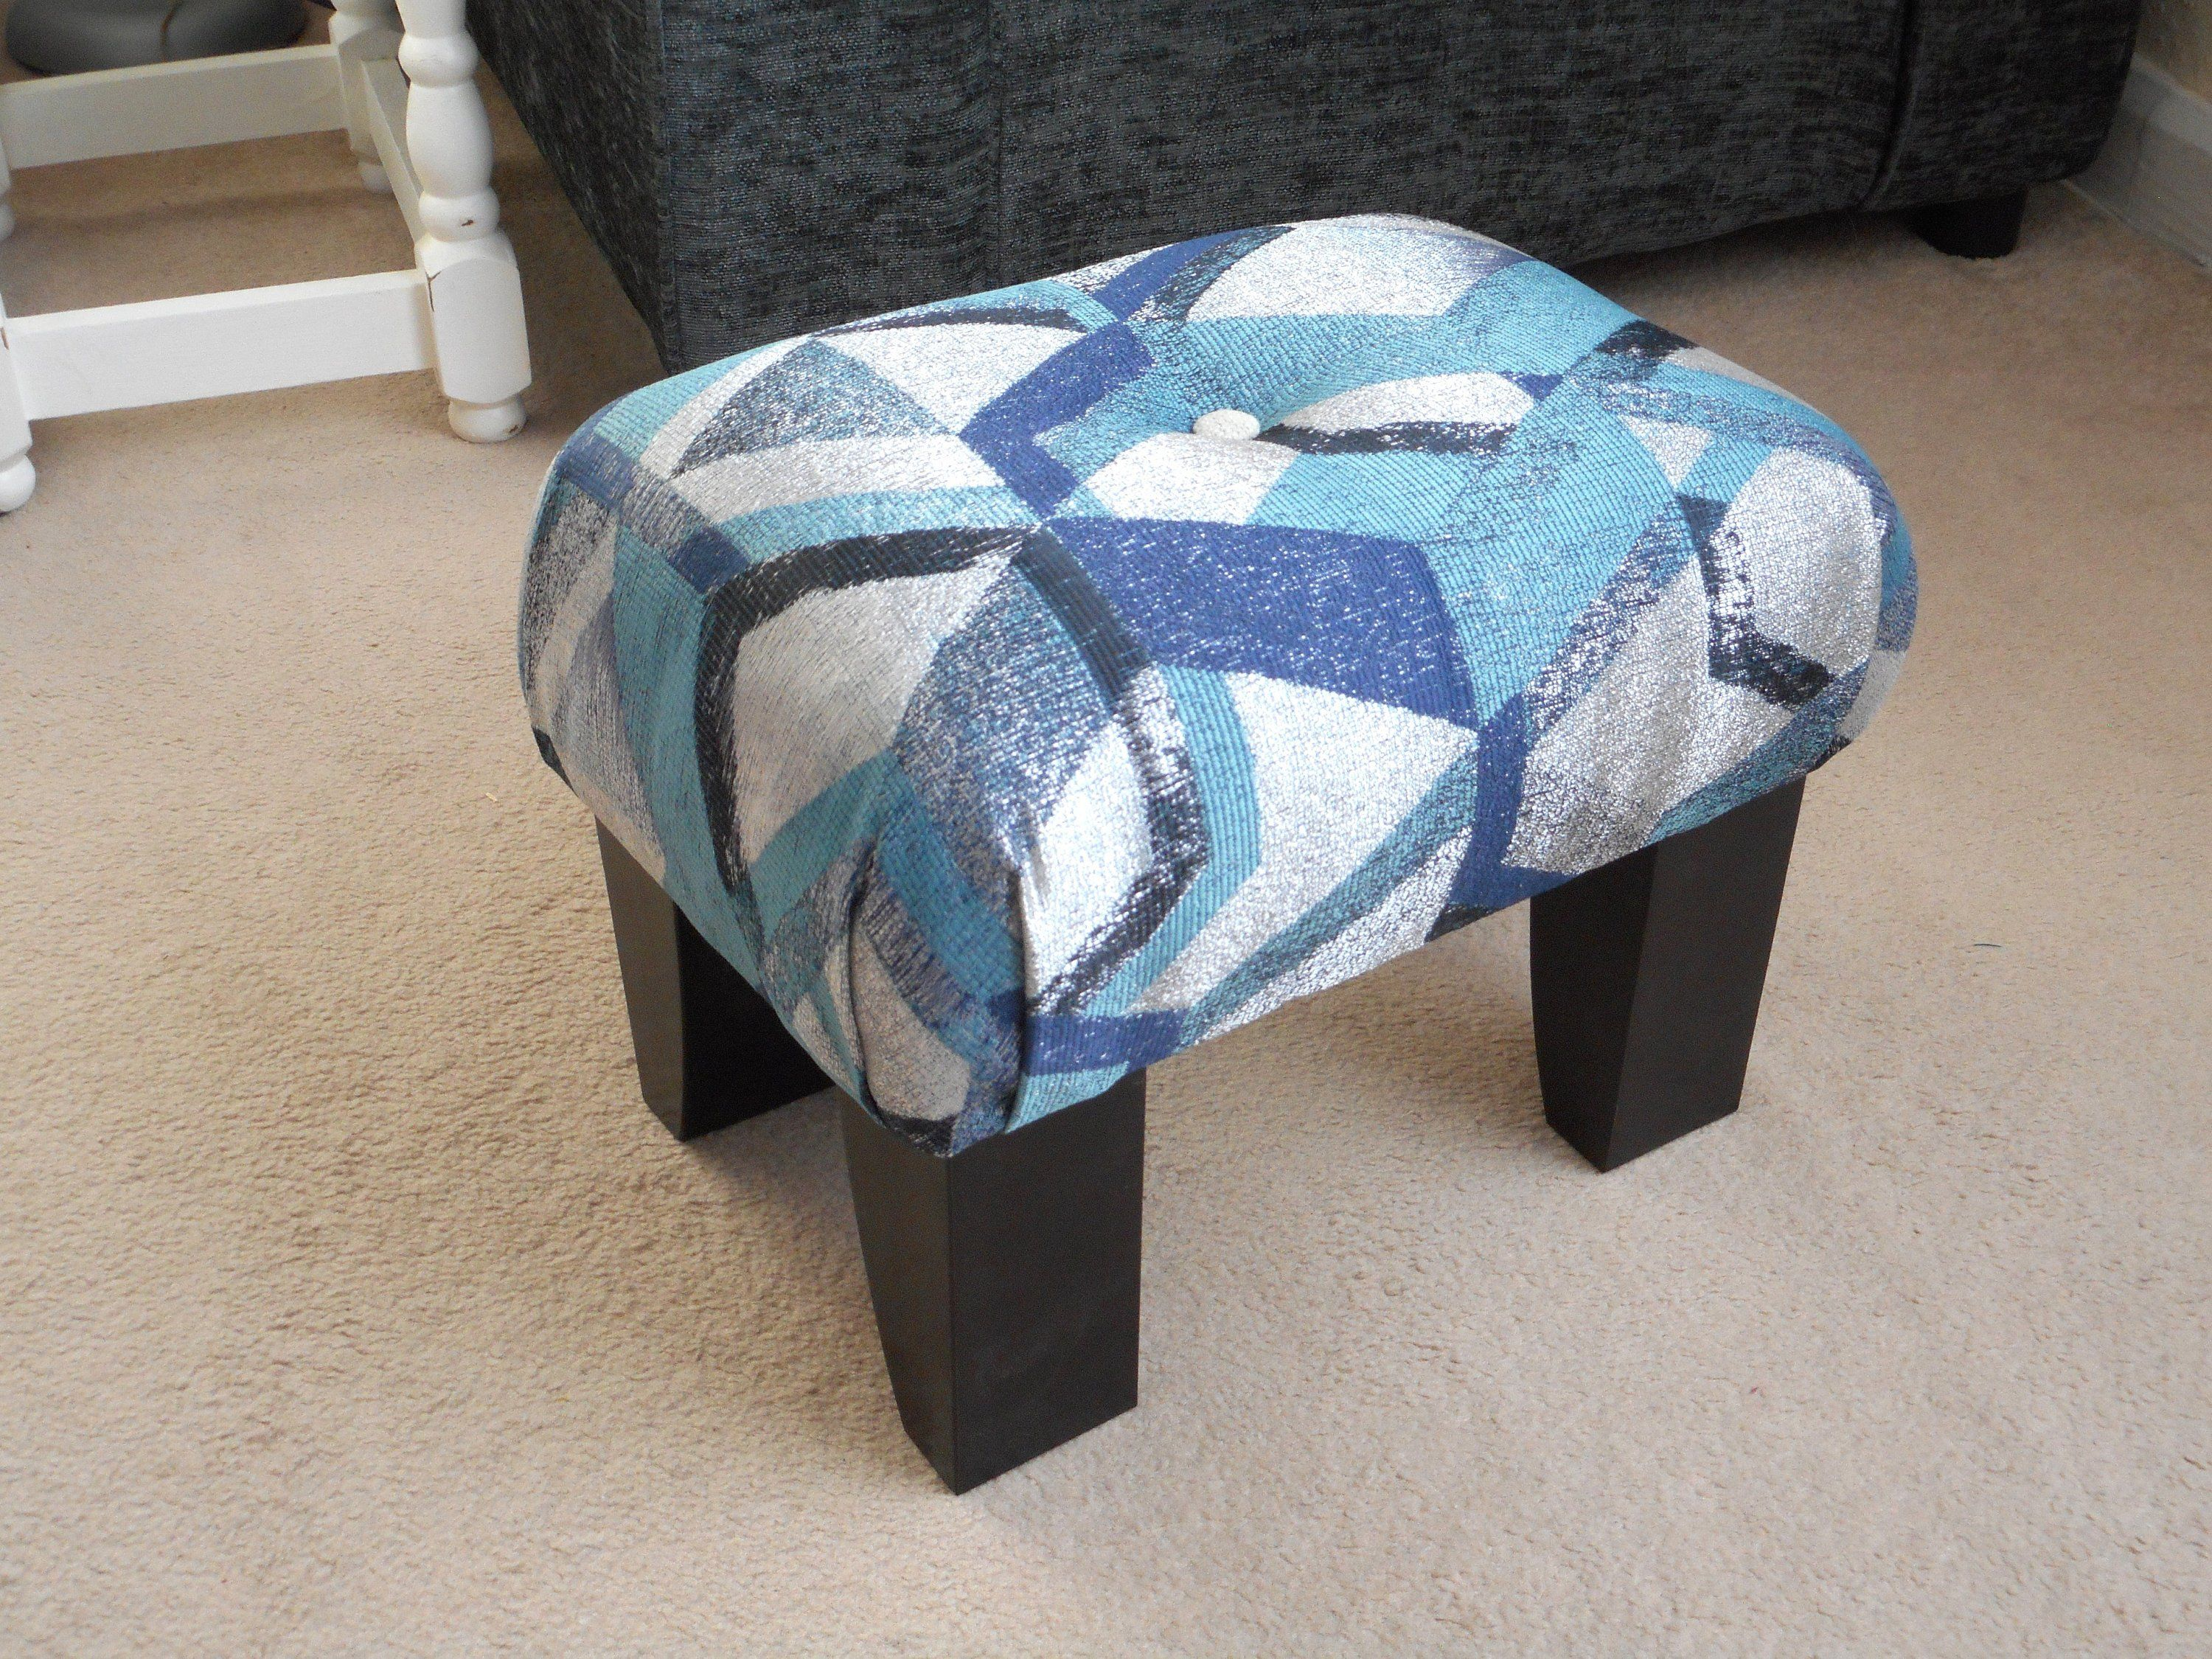 Unique Footstool Small Footstool Upholstered Footstool Small Stool Upholstered Foot Stool Handmade Upholstered Footstool Small Footstool Small Stool